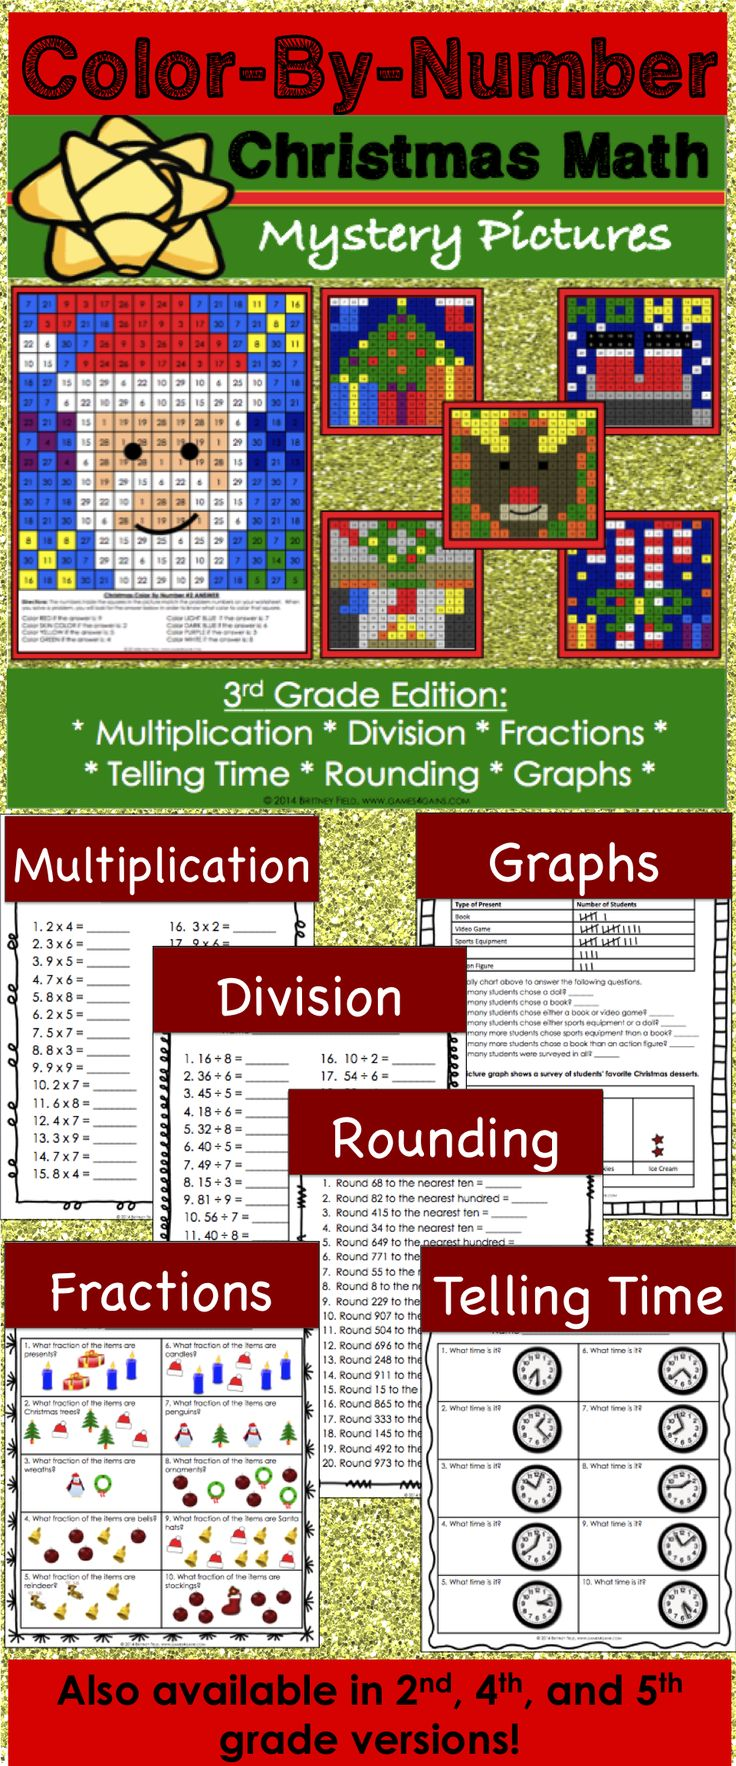 Christmas math activity (Color by Number) for 3rd grade makes practicing multiplication, division, rounding, fractions, telling time, and graphs fun! Included are 6 different Christmas color by number math activities. Each activity addresses a different 3rd grade math skill.